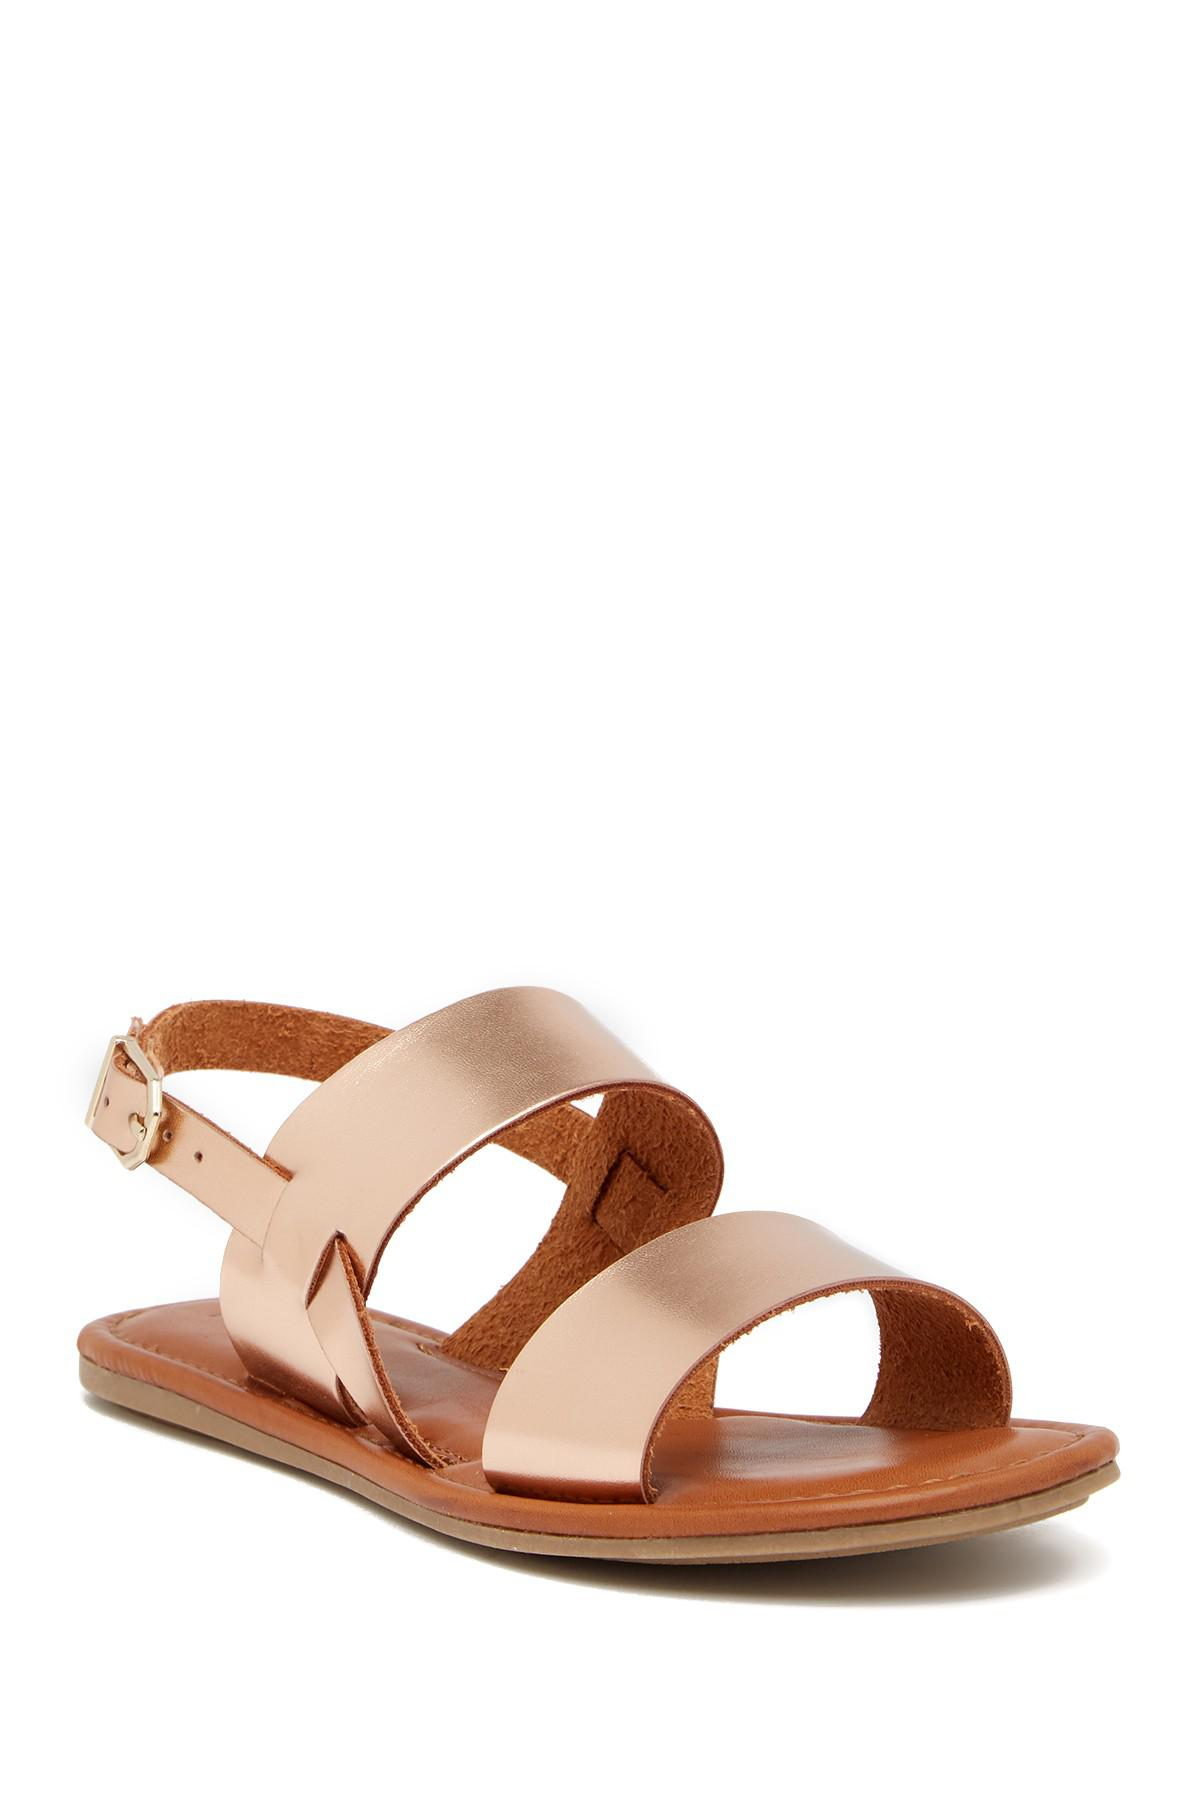 Mia Deana Sneaker Sandal(Women's) -Black Faux Leather Outlet Best Store To Get For Cheap For Sale S4JGlx